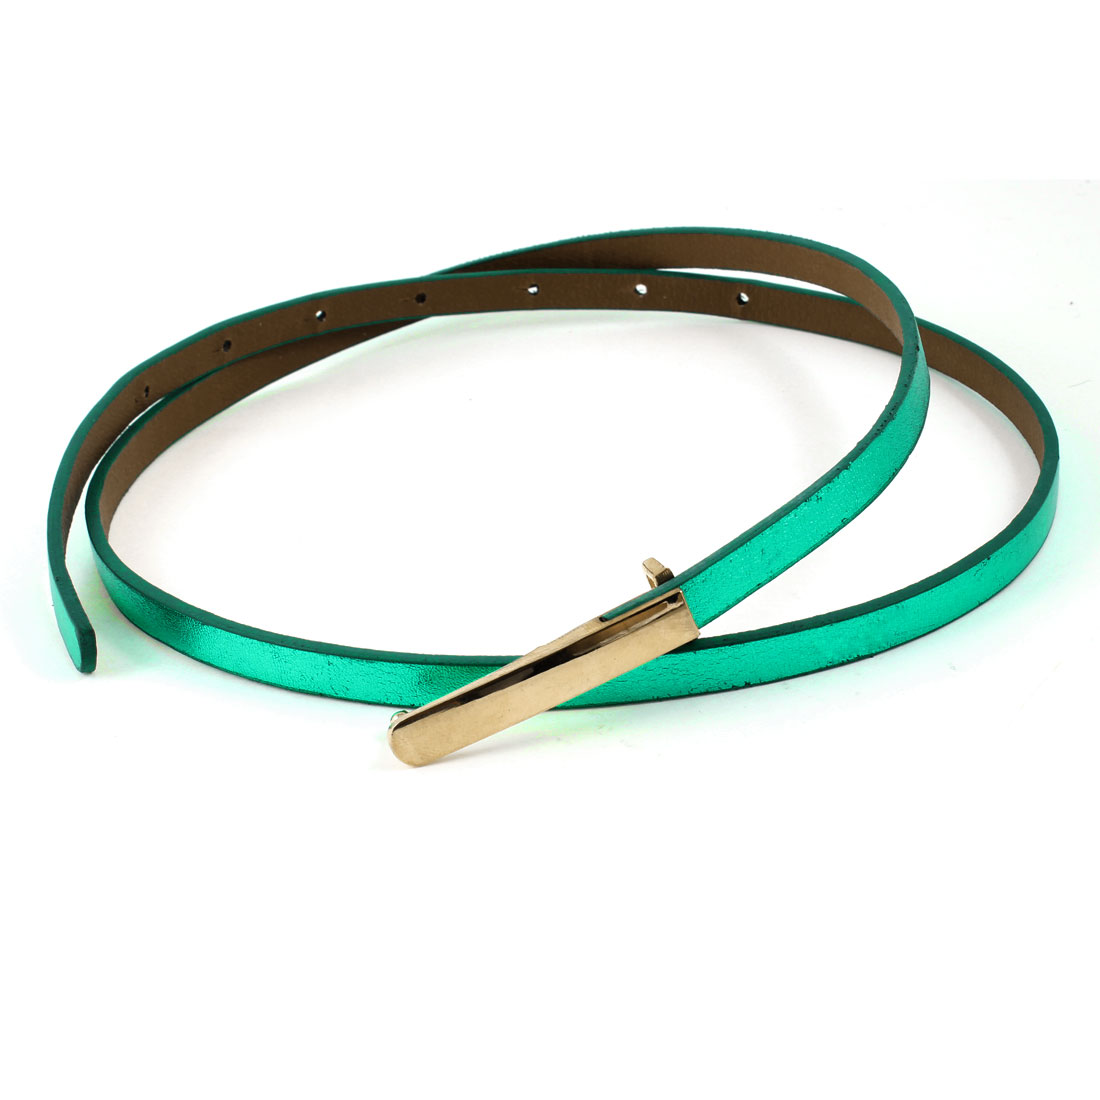 Green Faux Leather Press Buckle Adjustable Band Skinny Waist Belt for Women